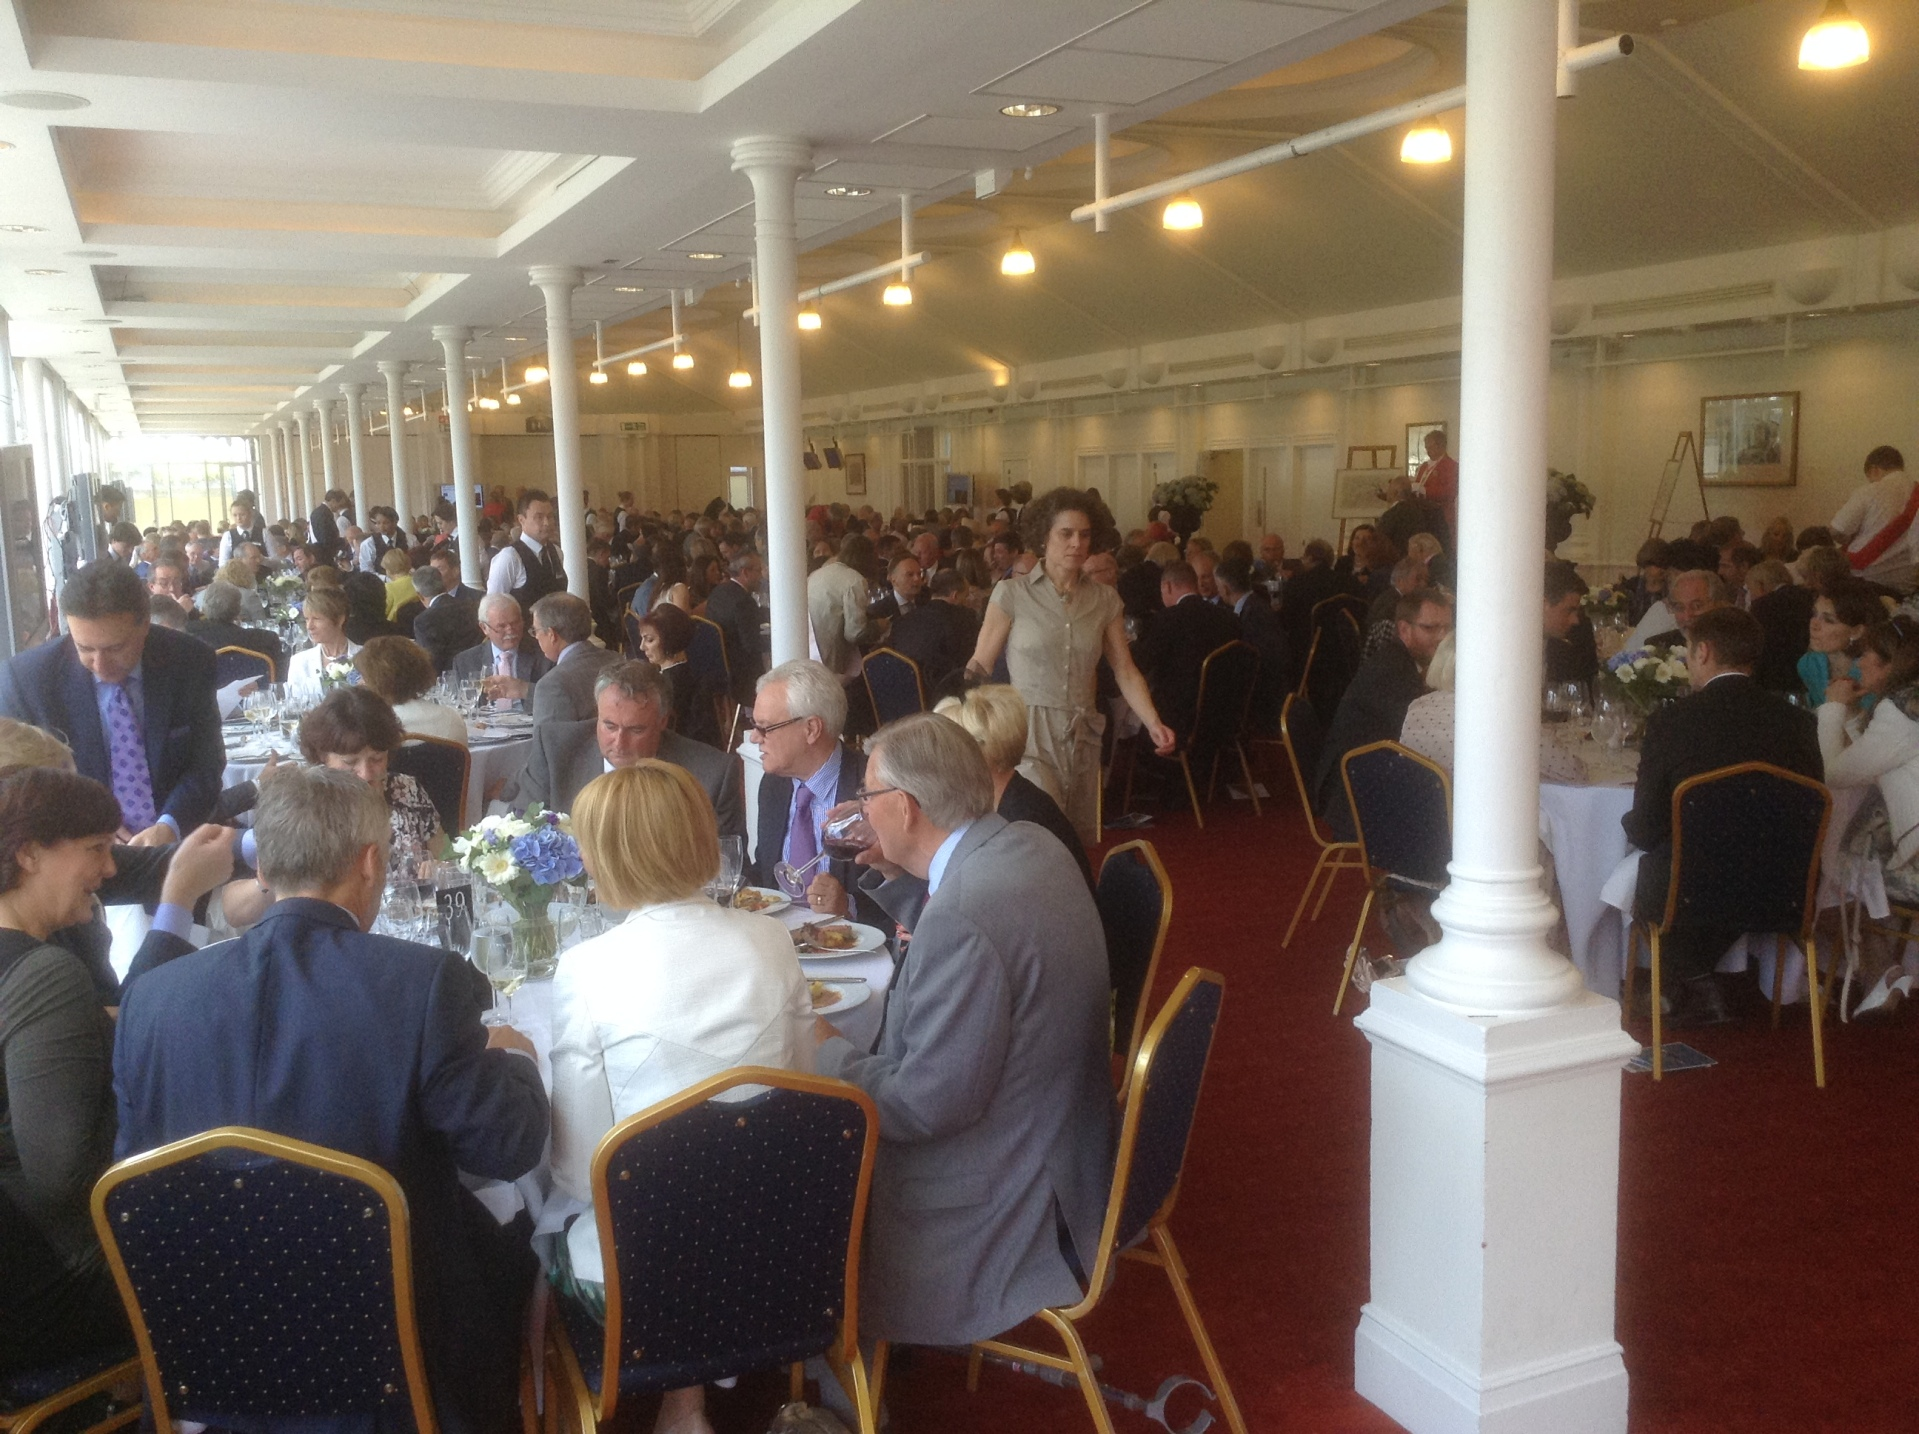 Prince Philip Trust Fund Race Day lunch in pavillion